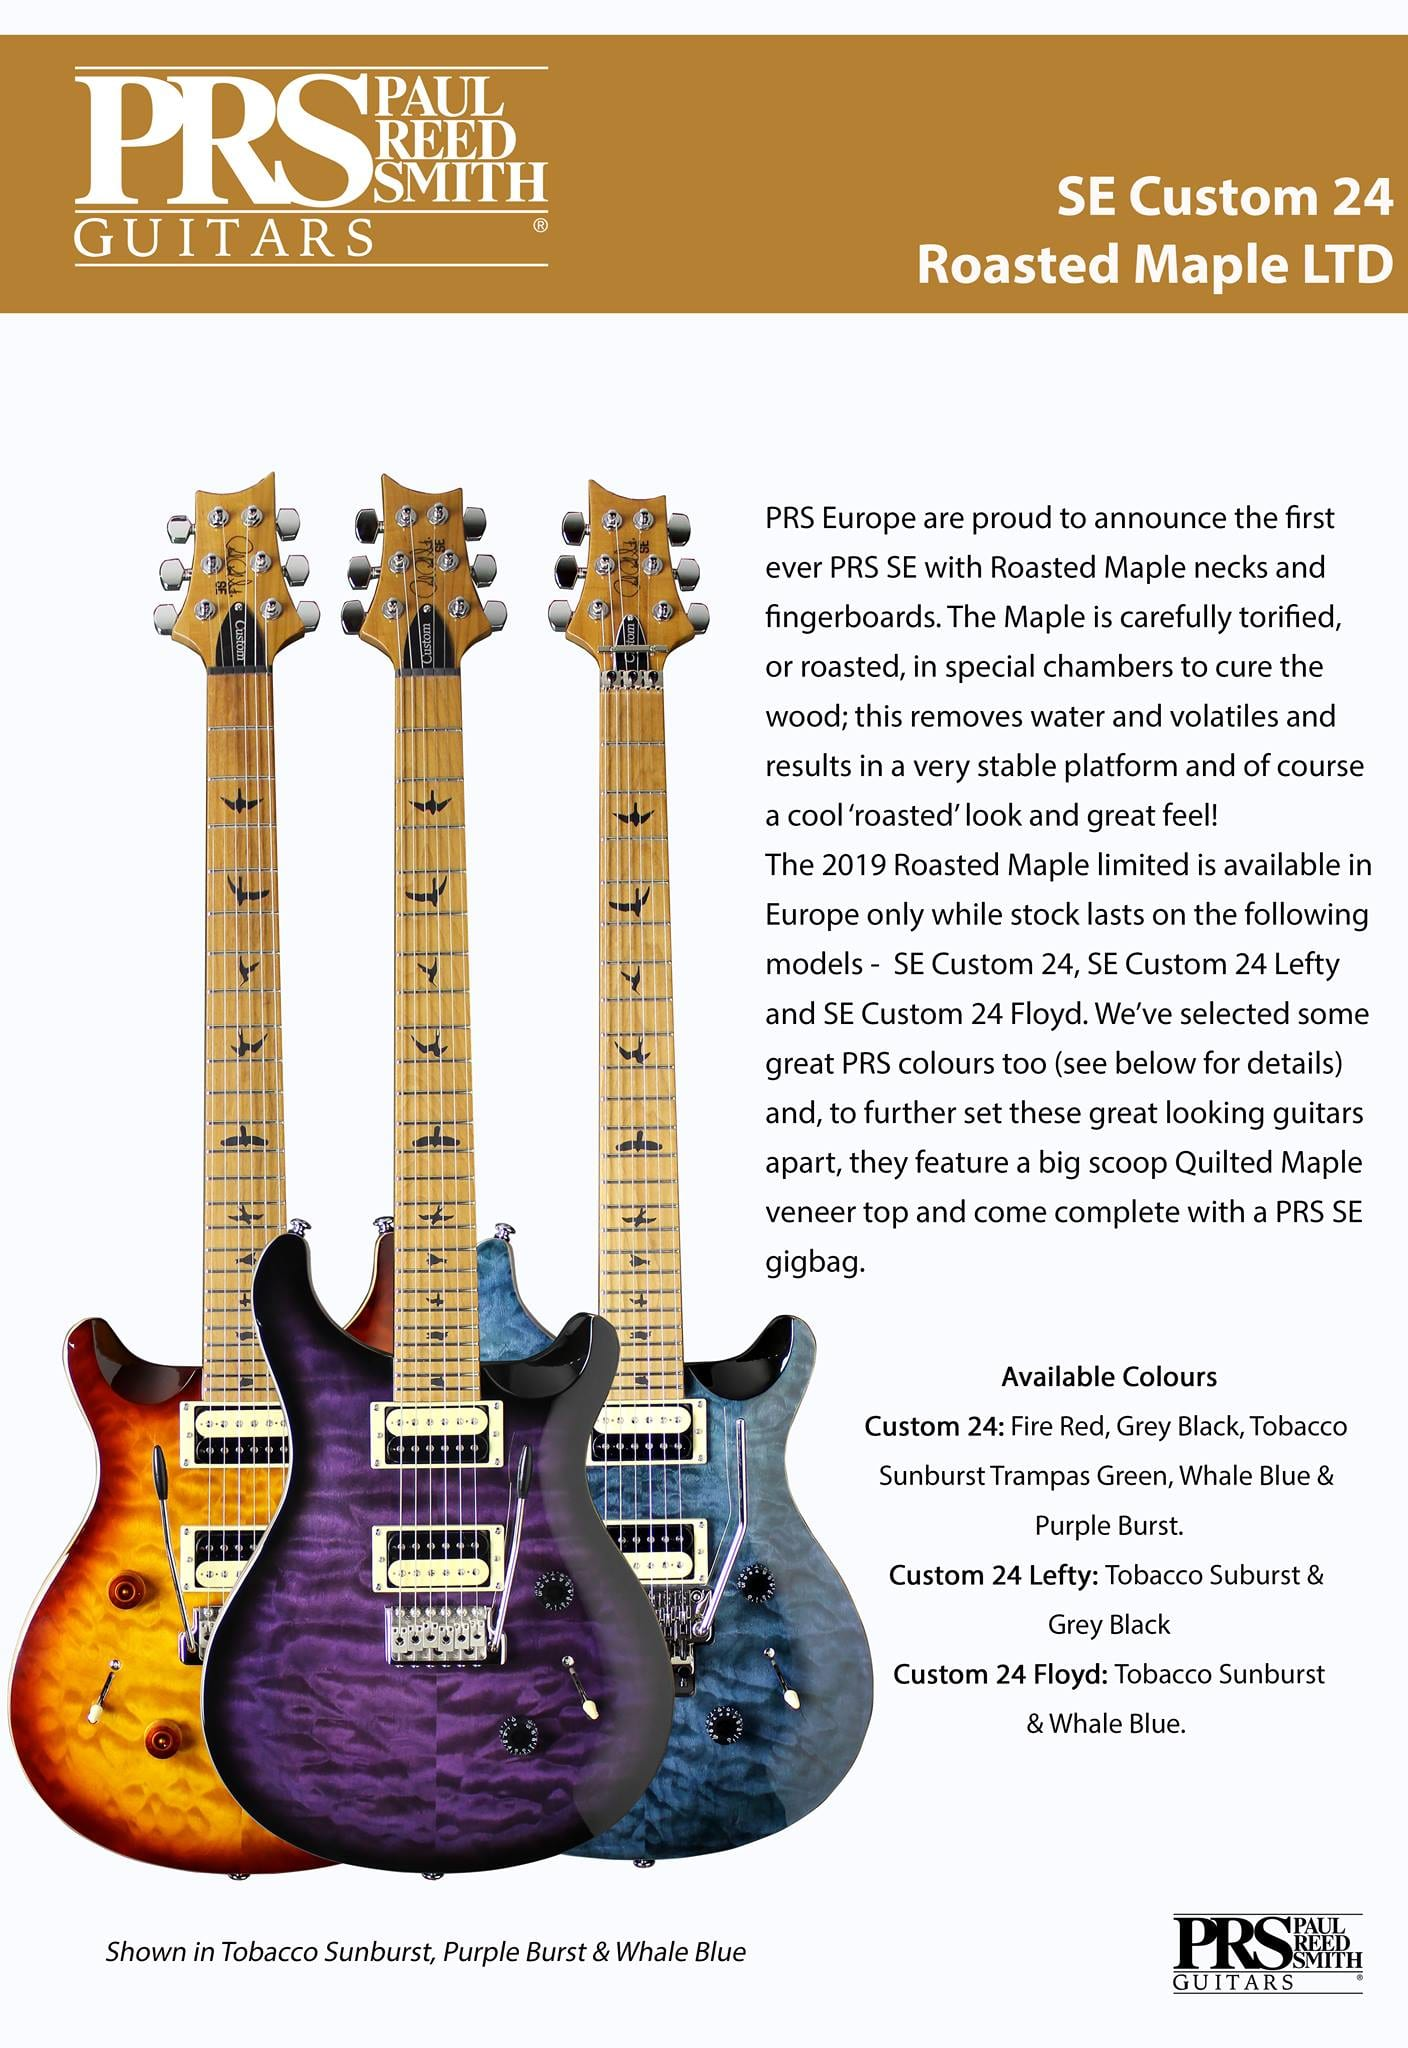 PRS SE Custom 24 Limited Editions with Roasted Maple necks